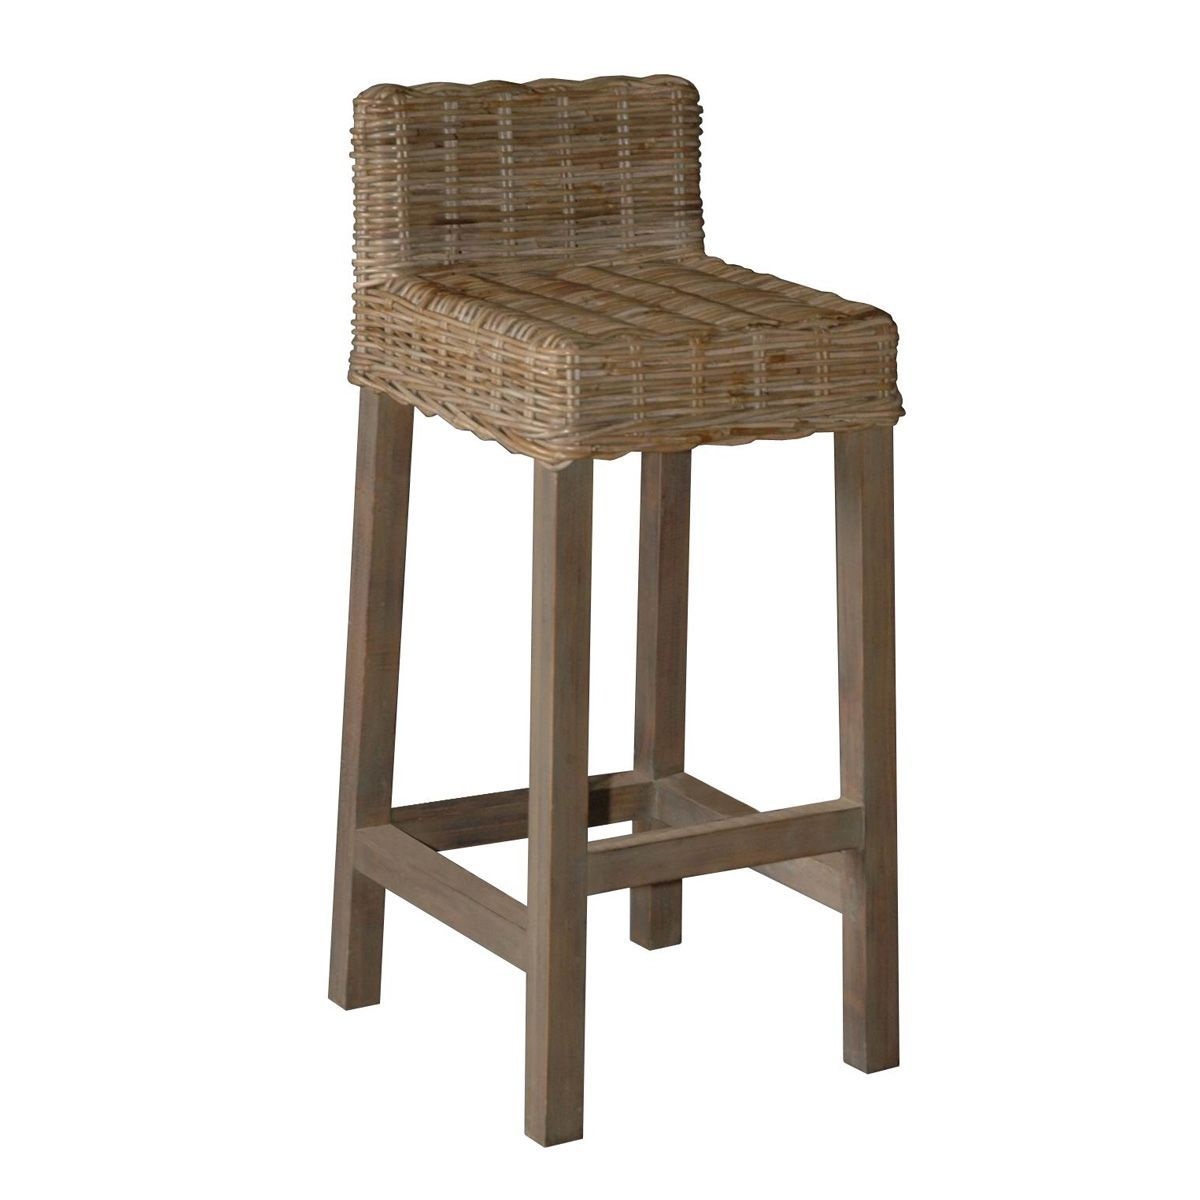 Rattan bar stool | Bahia ave | Pinterest